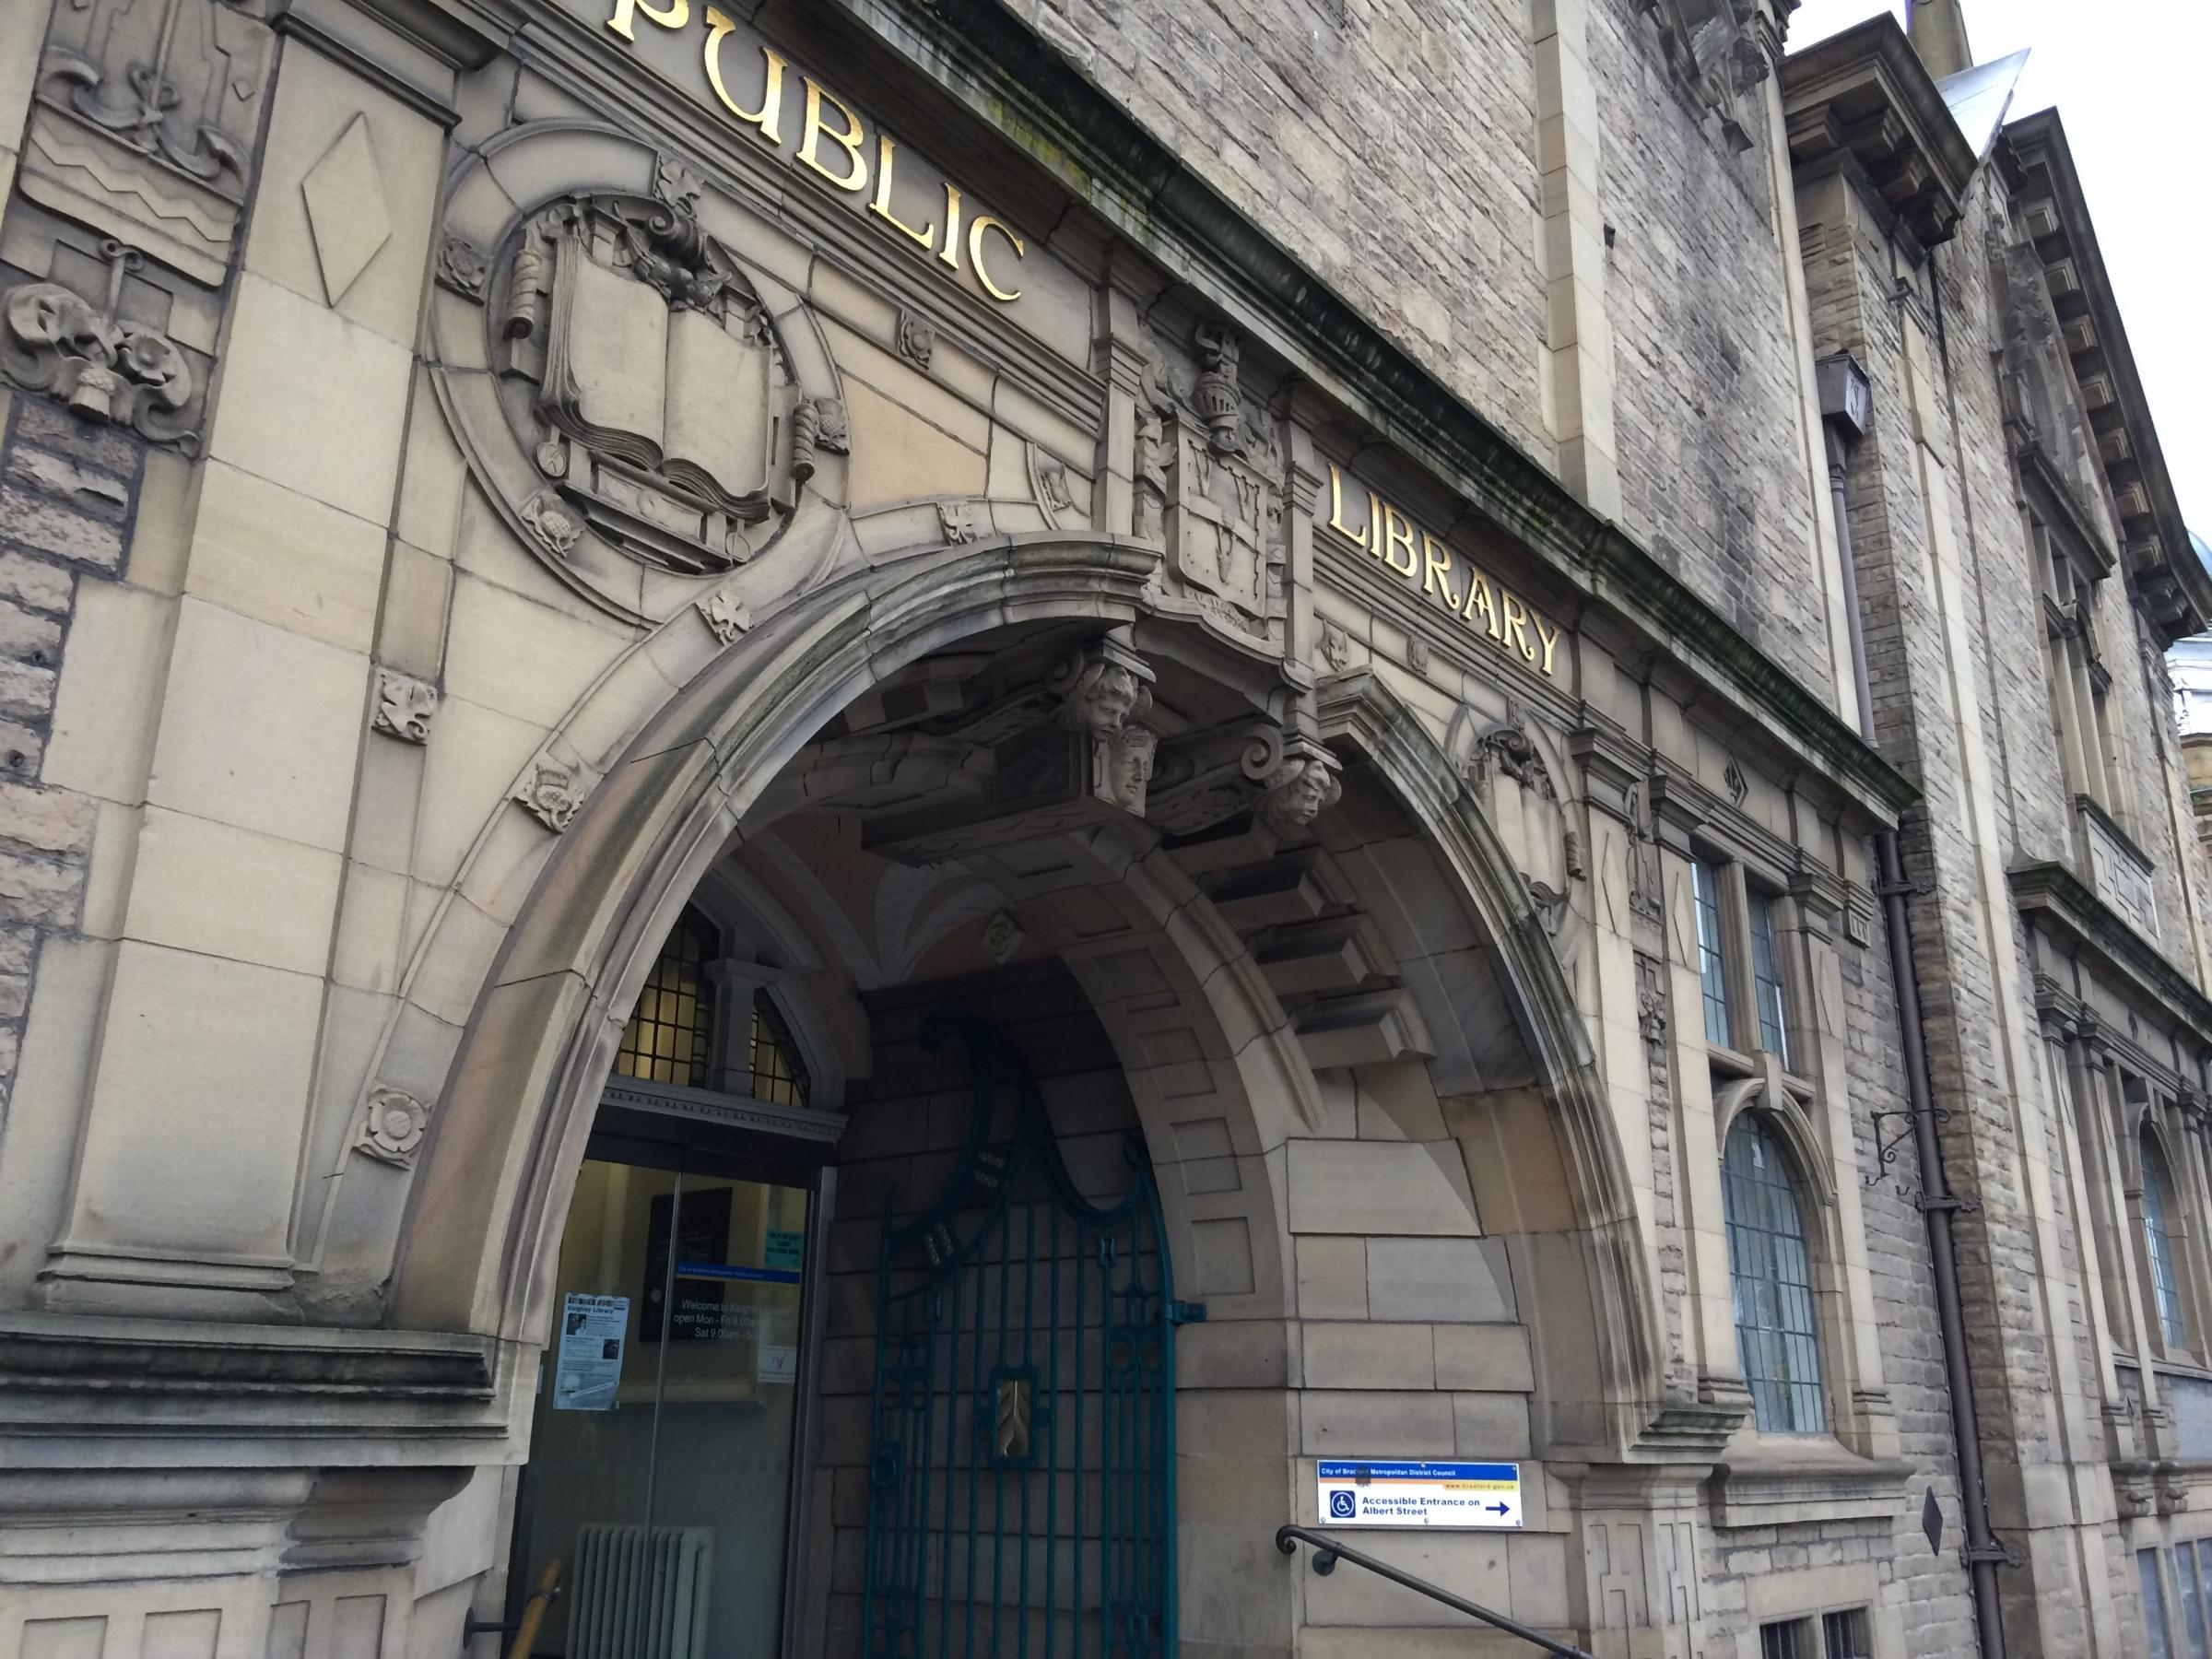 Keighley Library, which was a runner-up in the Rhyme Challenge